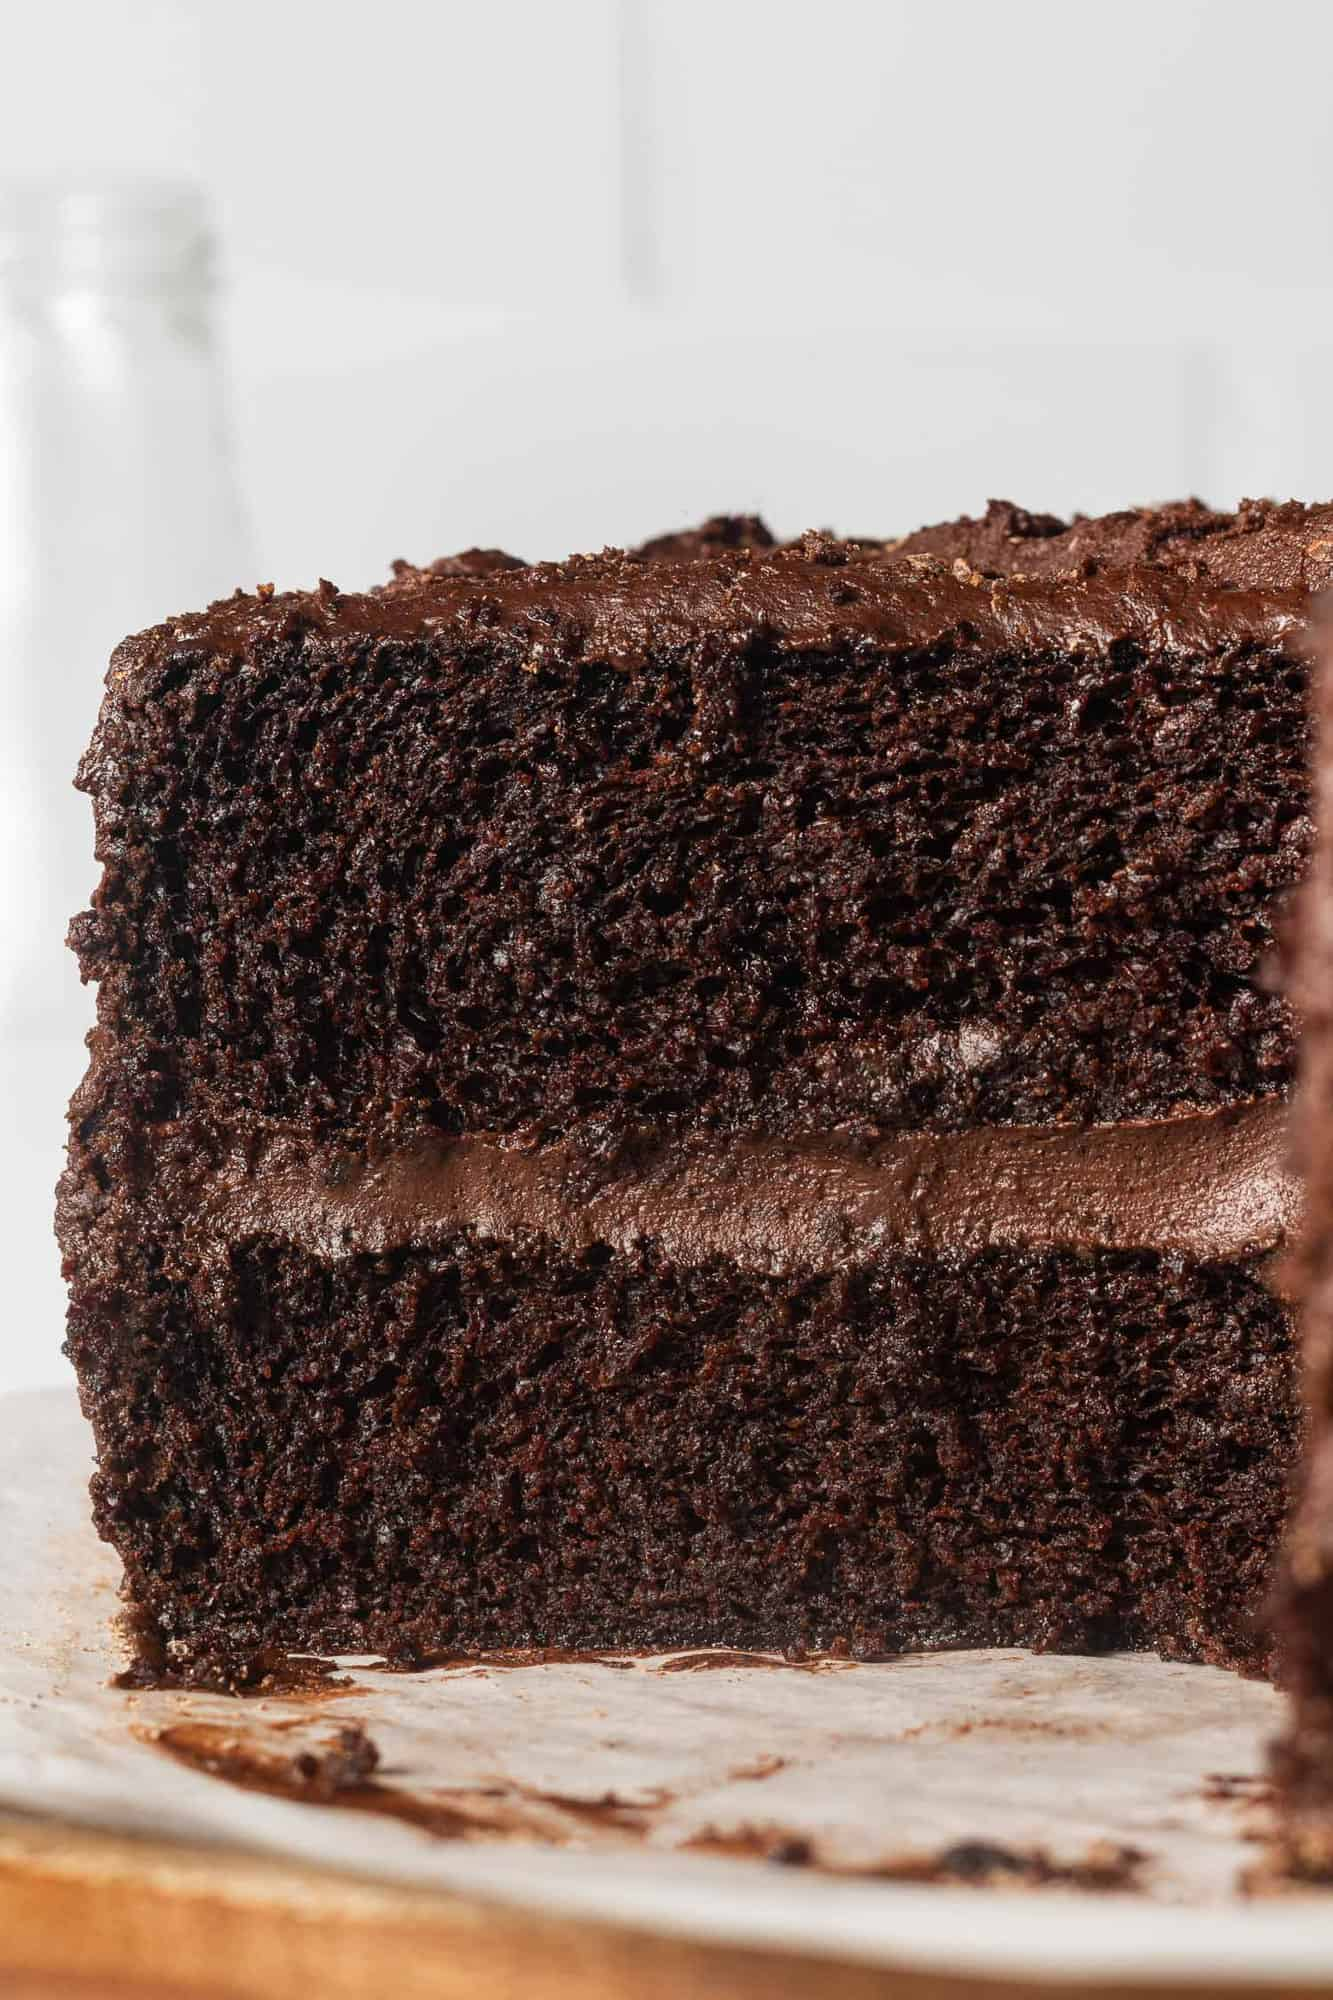 Chocolate layer cake, sliced, frosted with chocolate frosting.